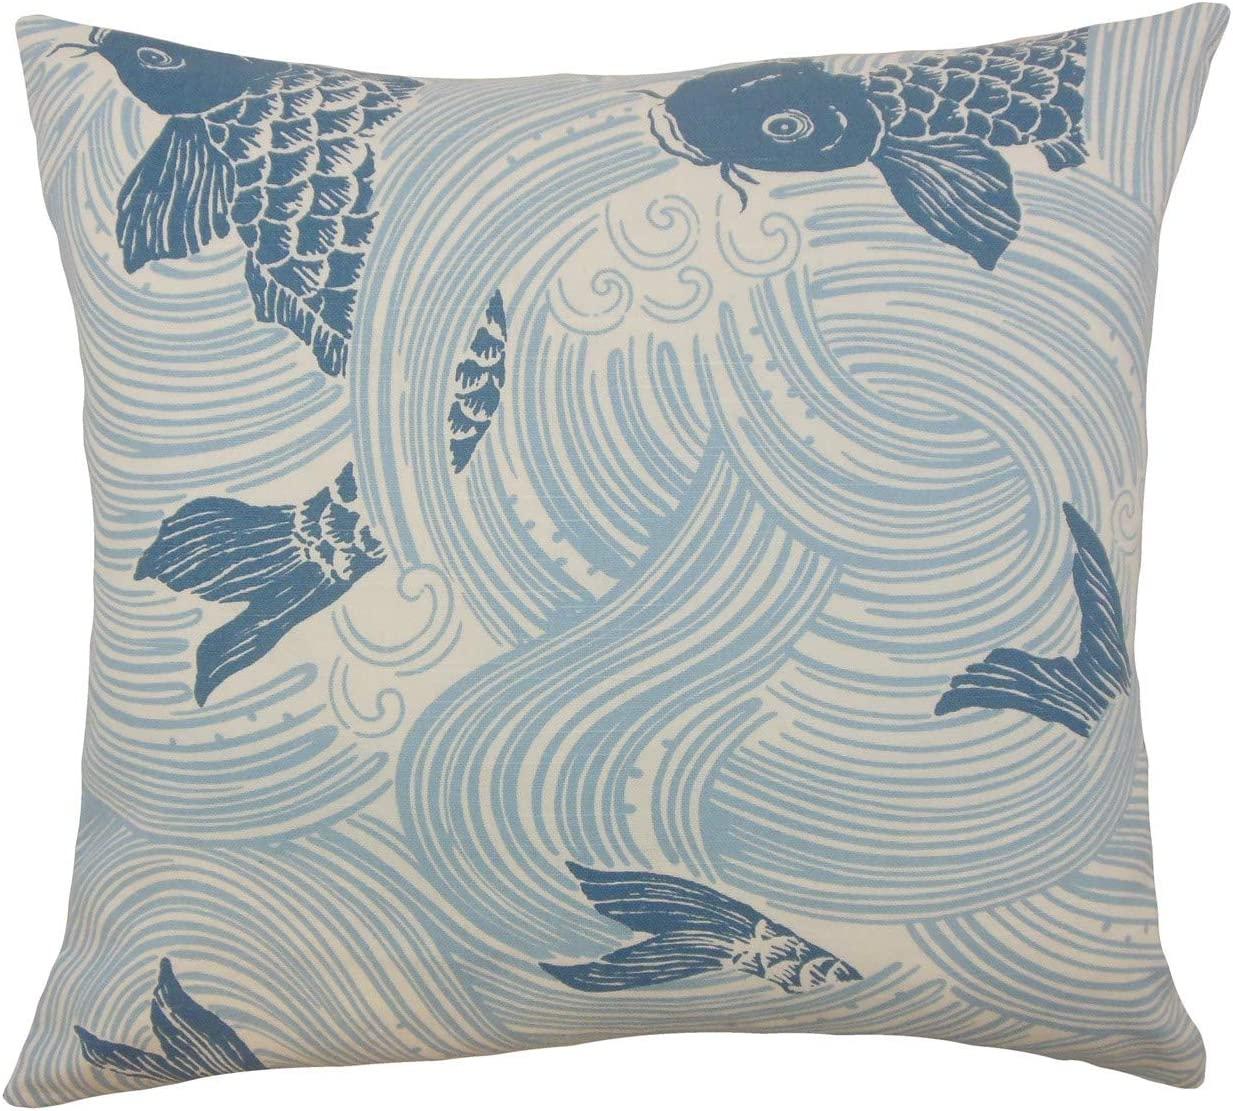 The Pillow Collection Utara Geometric Turquoise Down Filled Throw Pillow